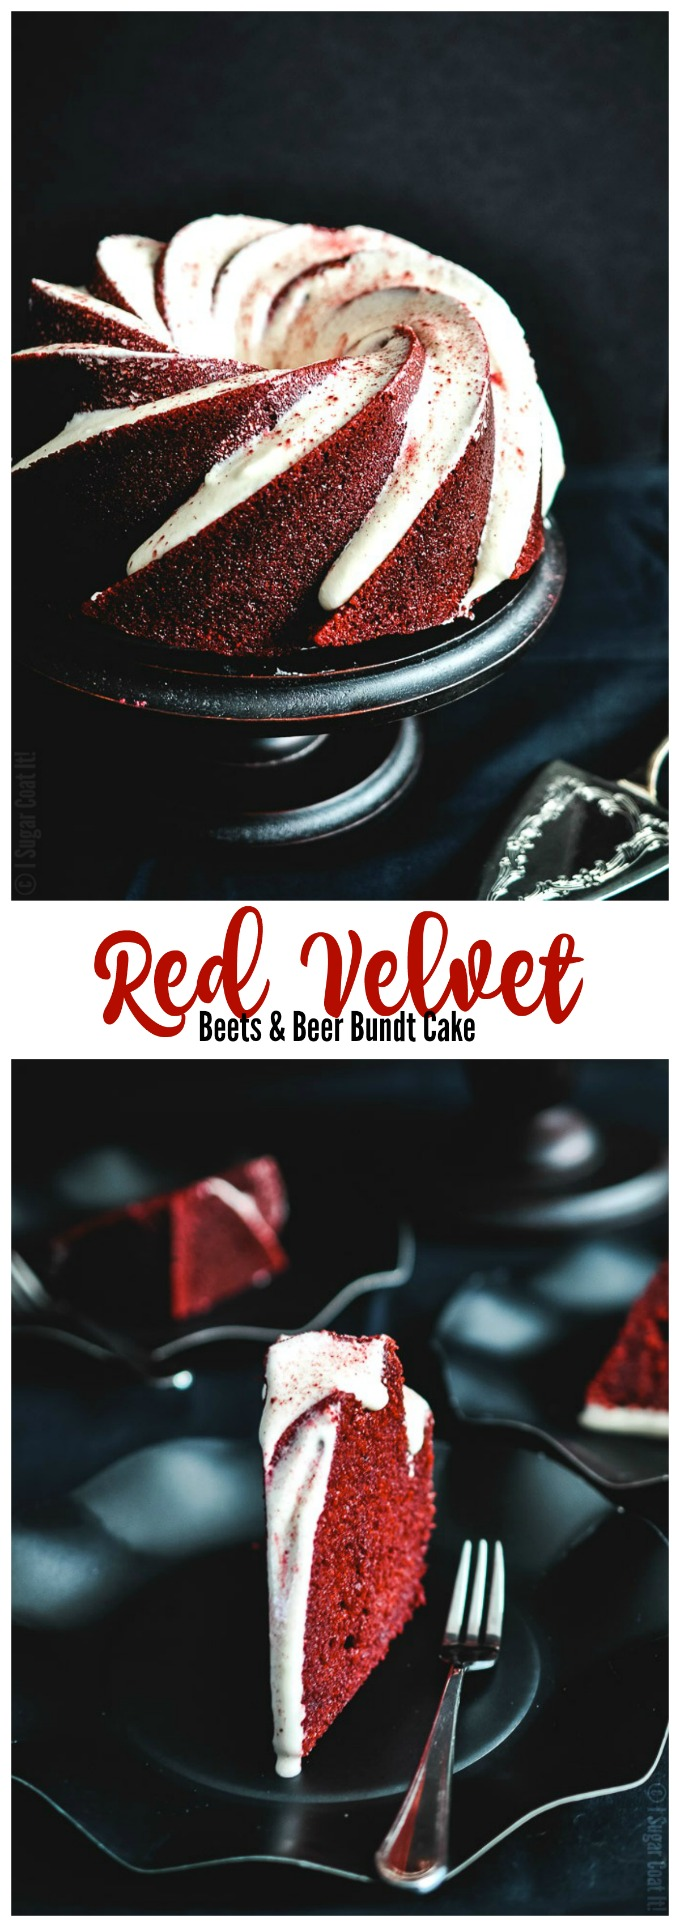 Beets and Beer Red Velvet Bundt Cake